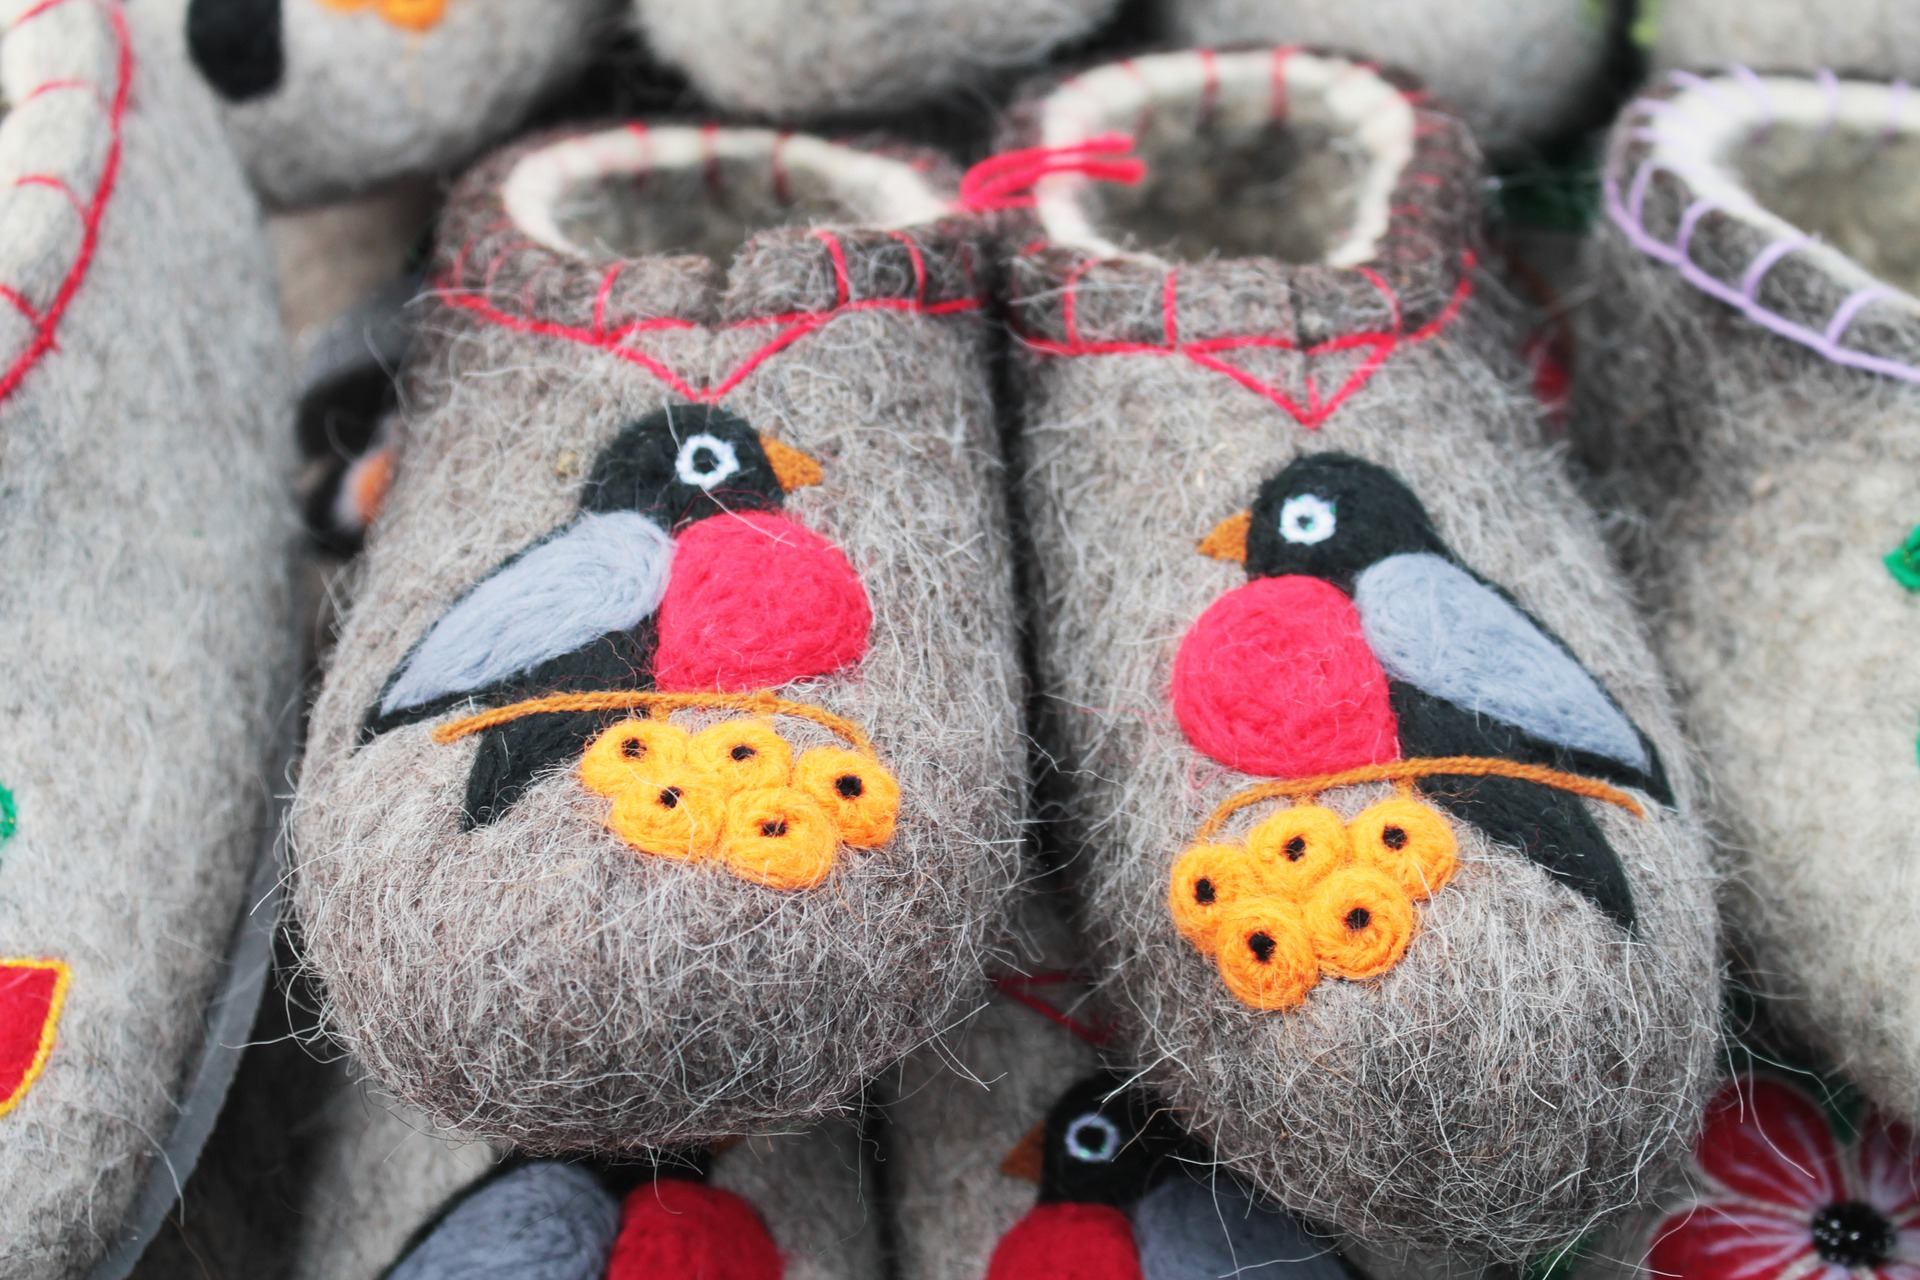 slippers-5077839_1920